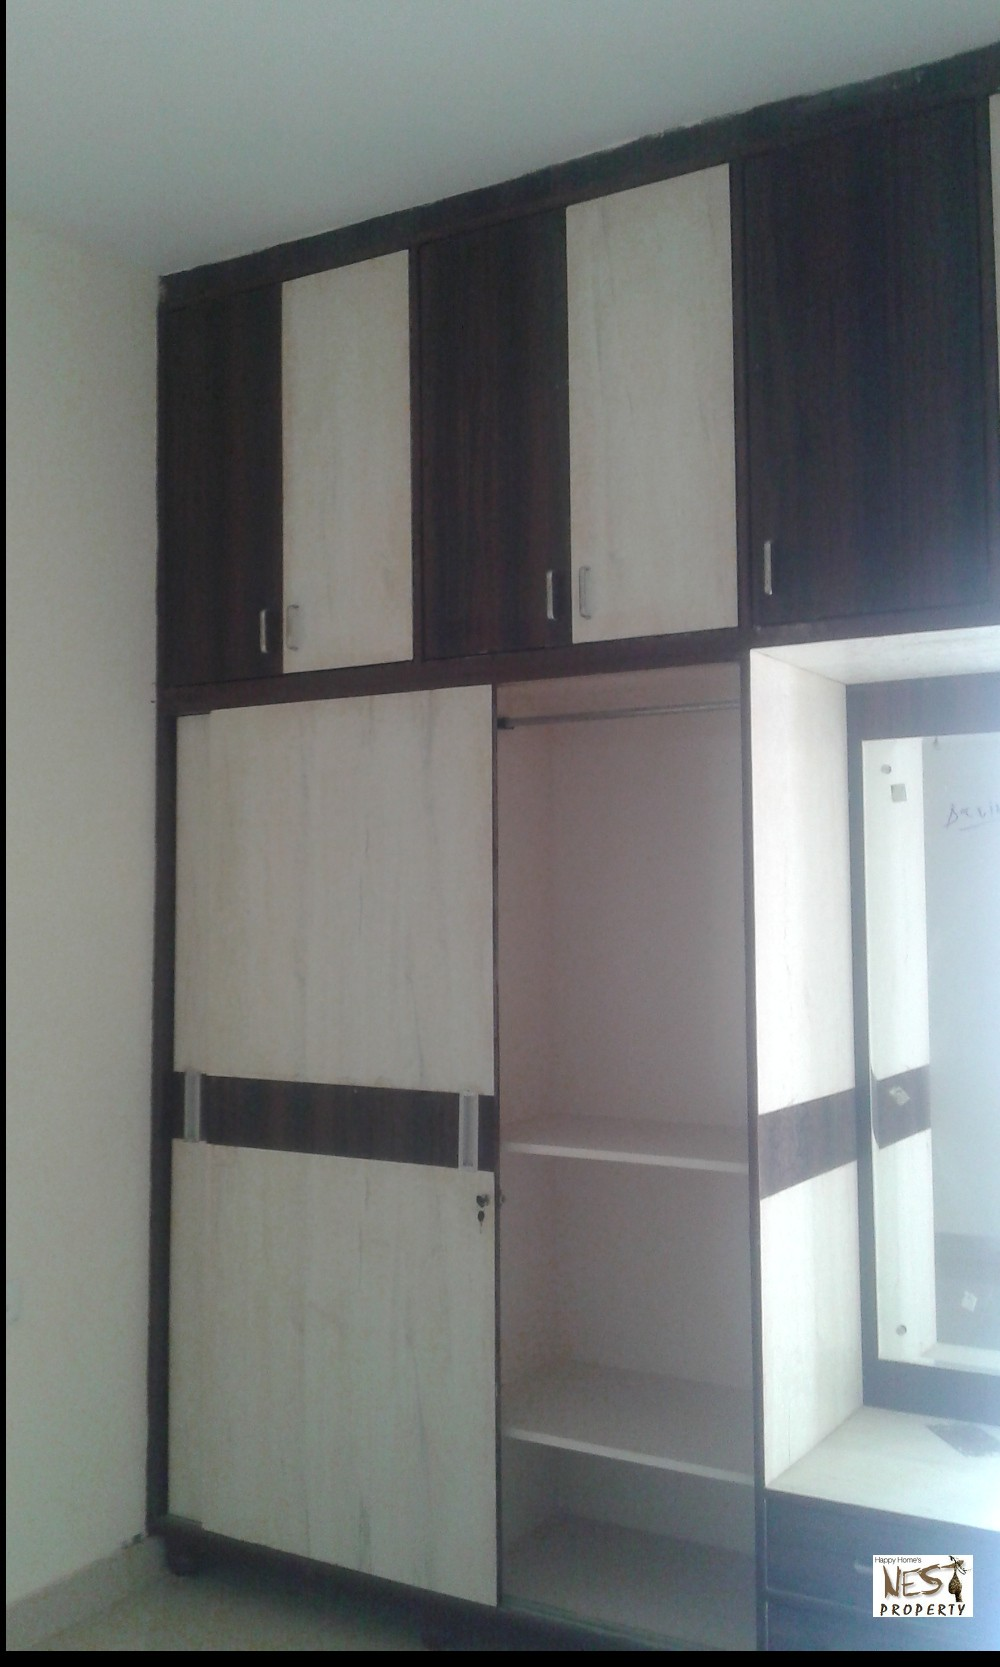 Flats for sale in chandigarh